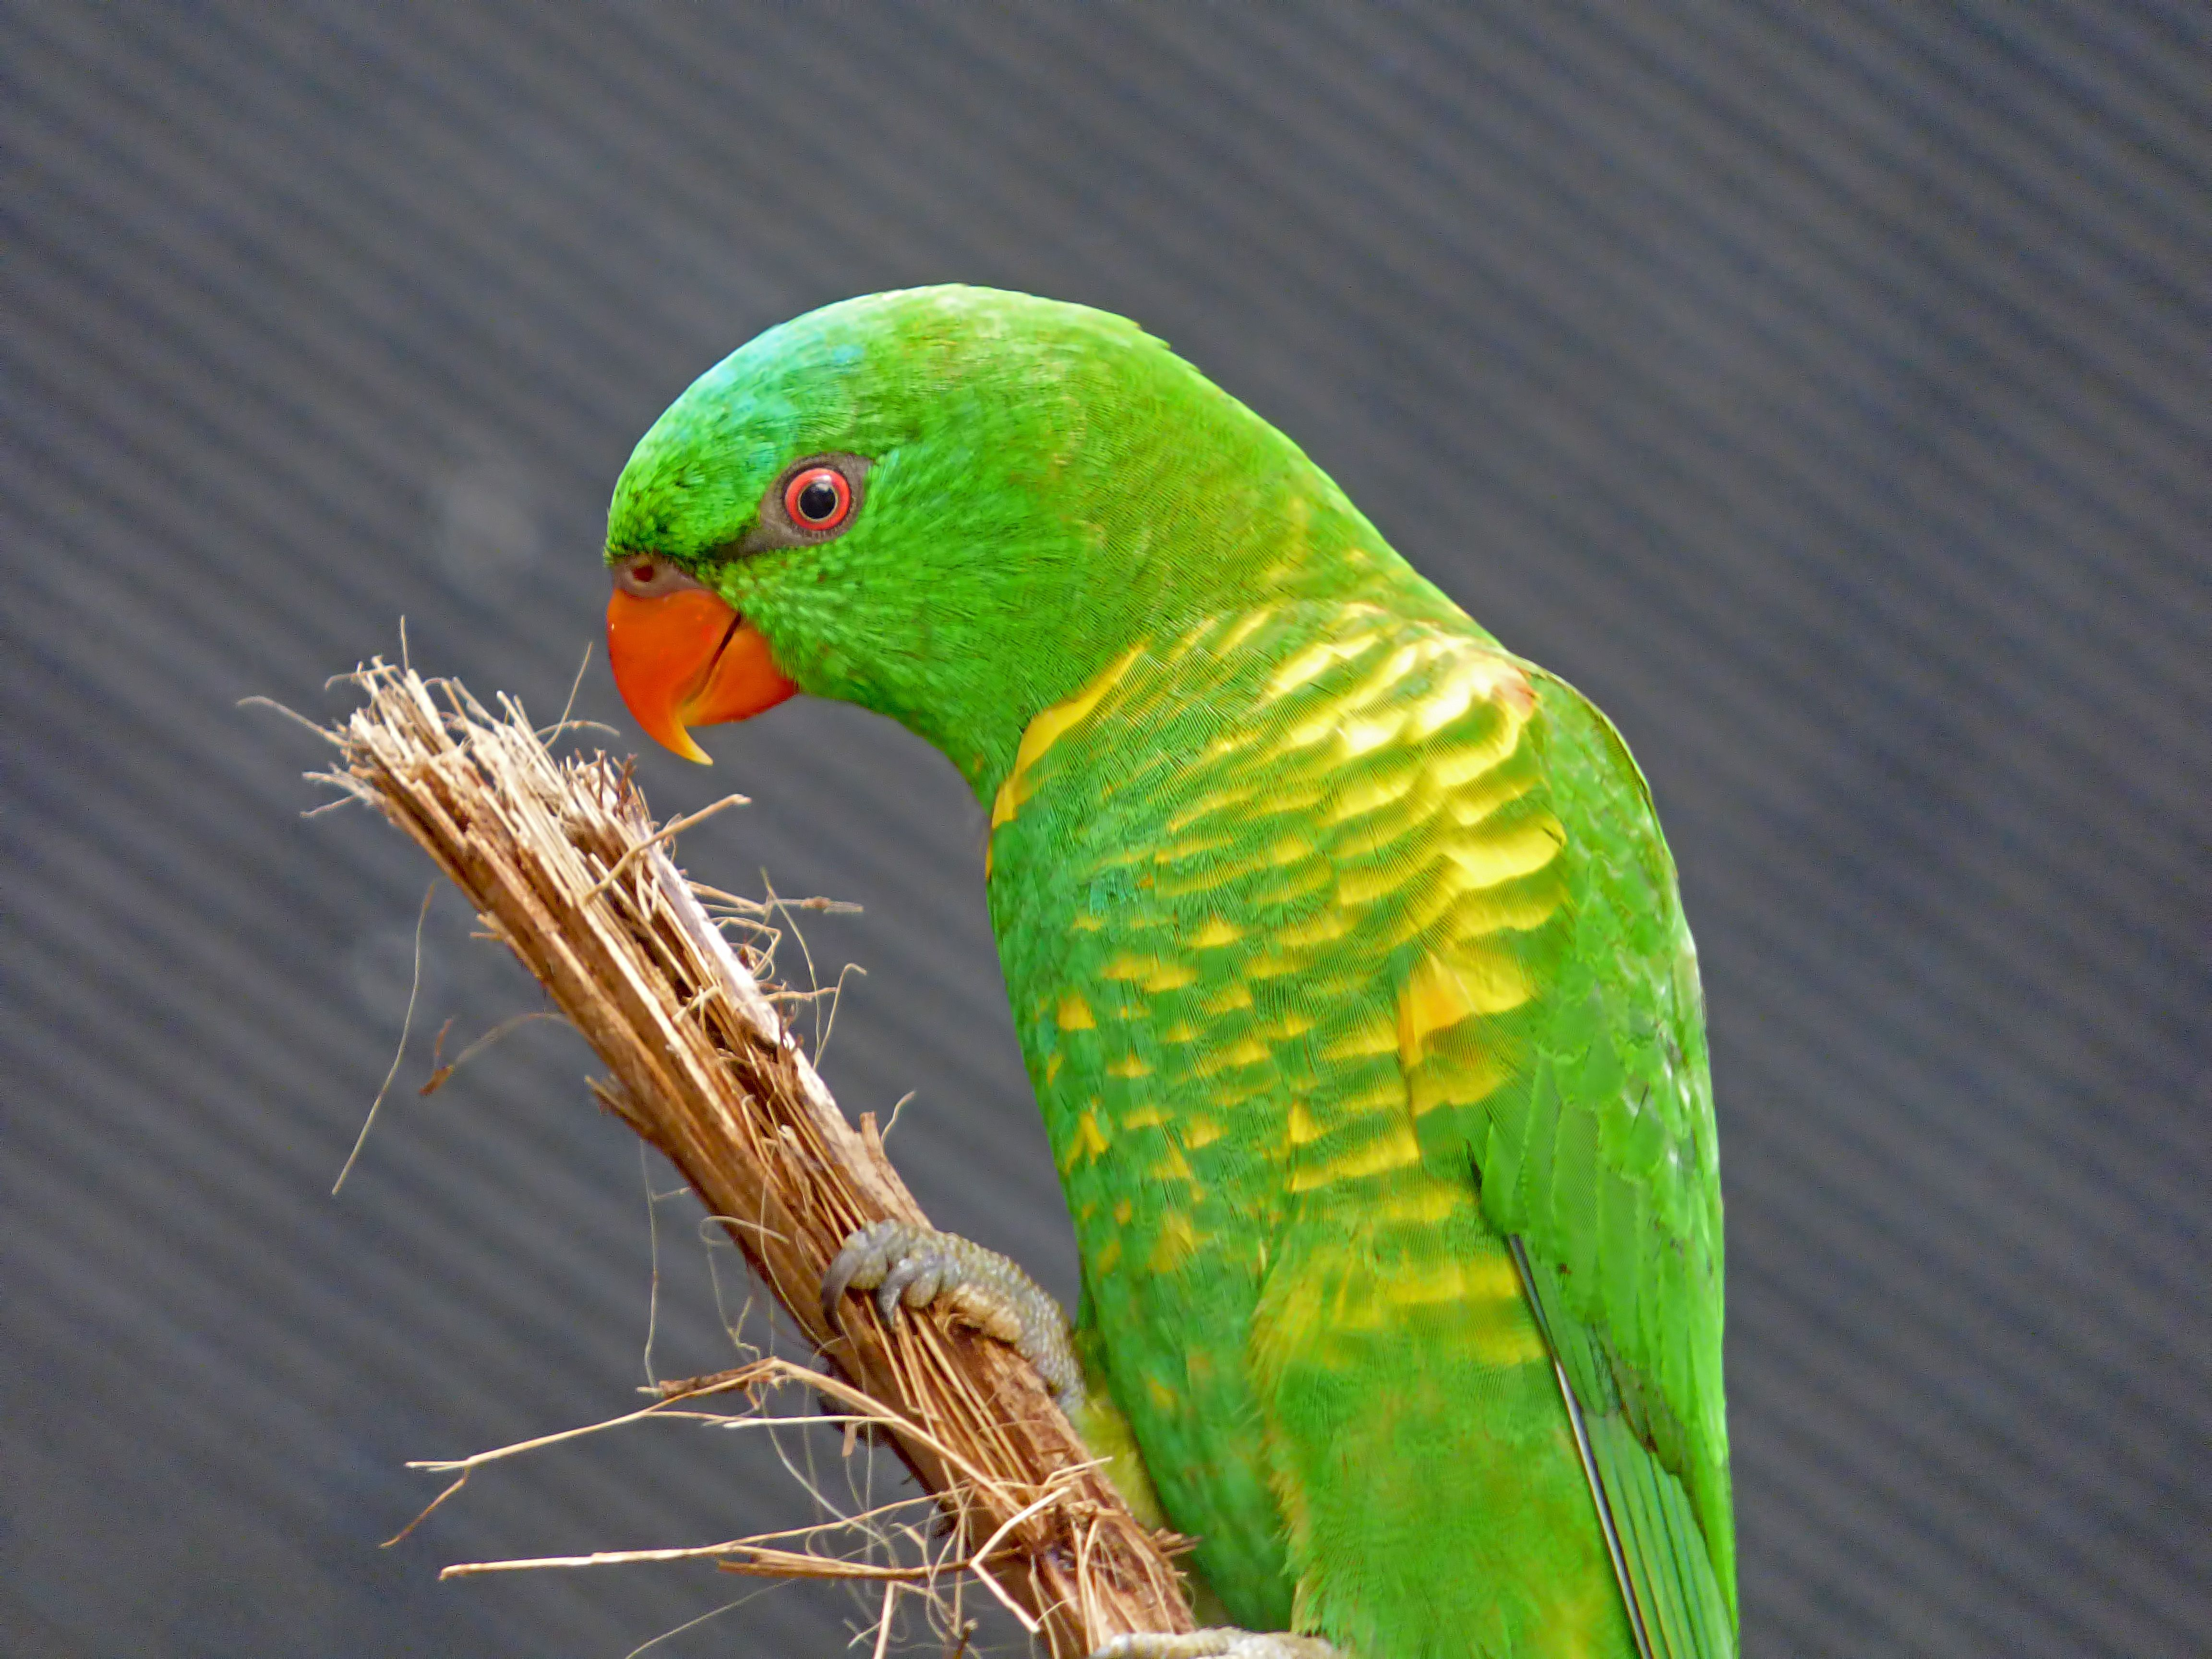 Scaly Breasted Lorikeet Qld Australian Parrots Small Insects Parrot